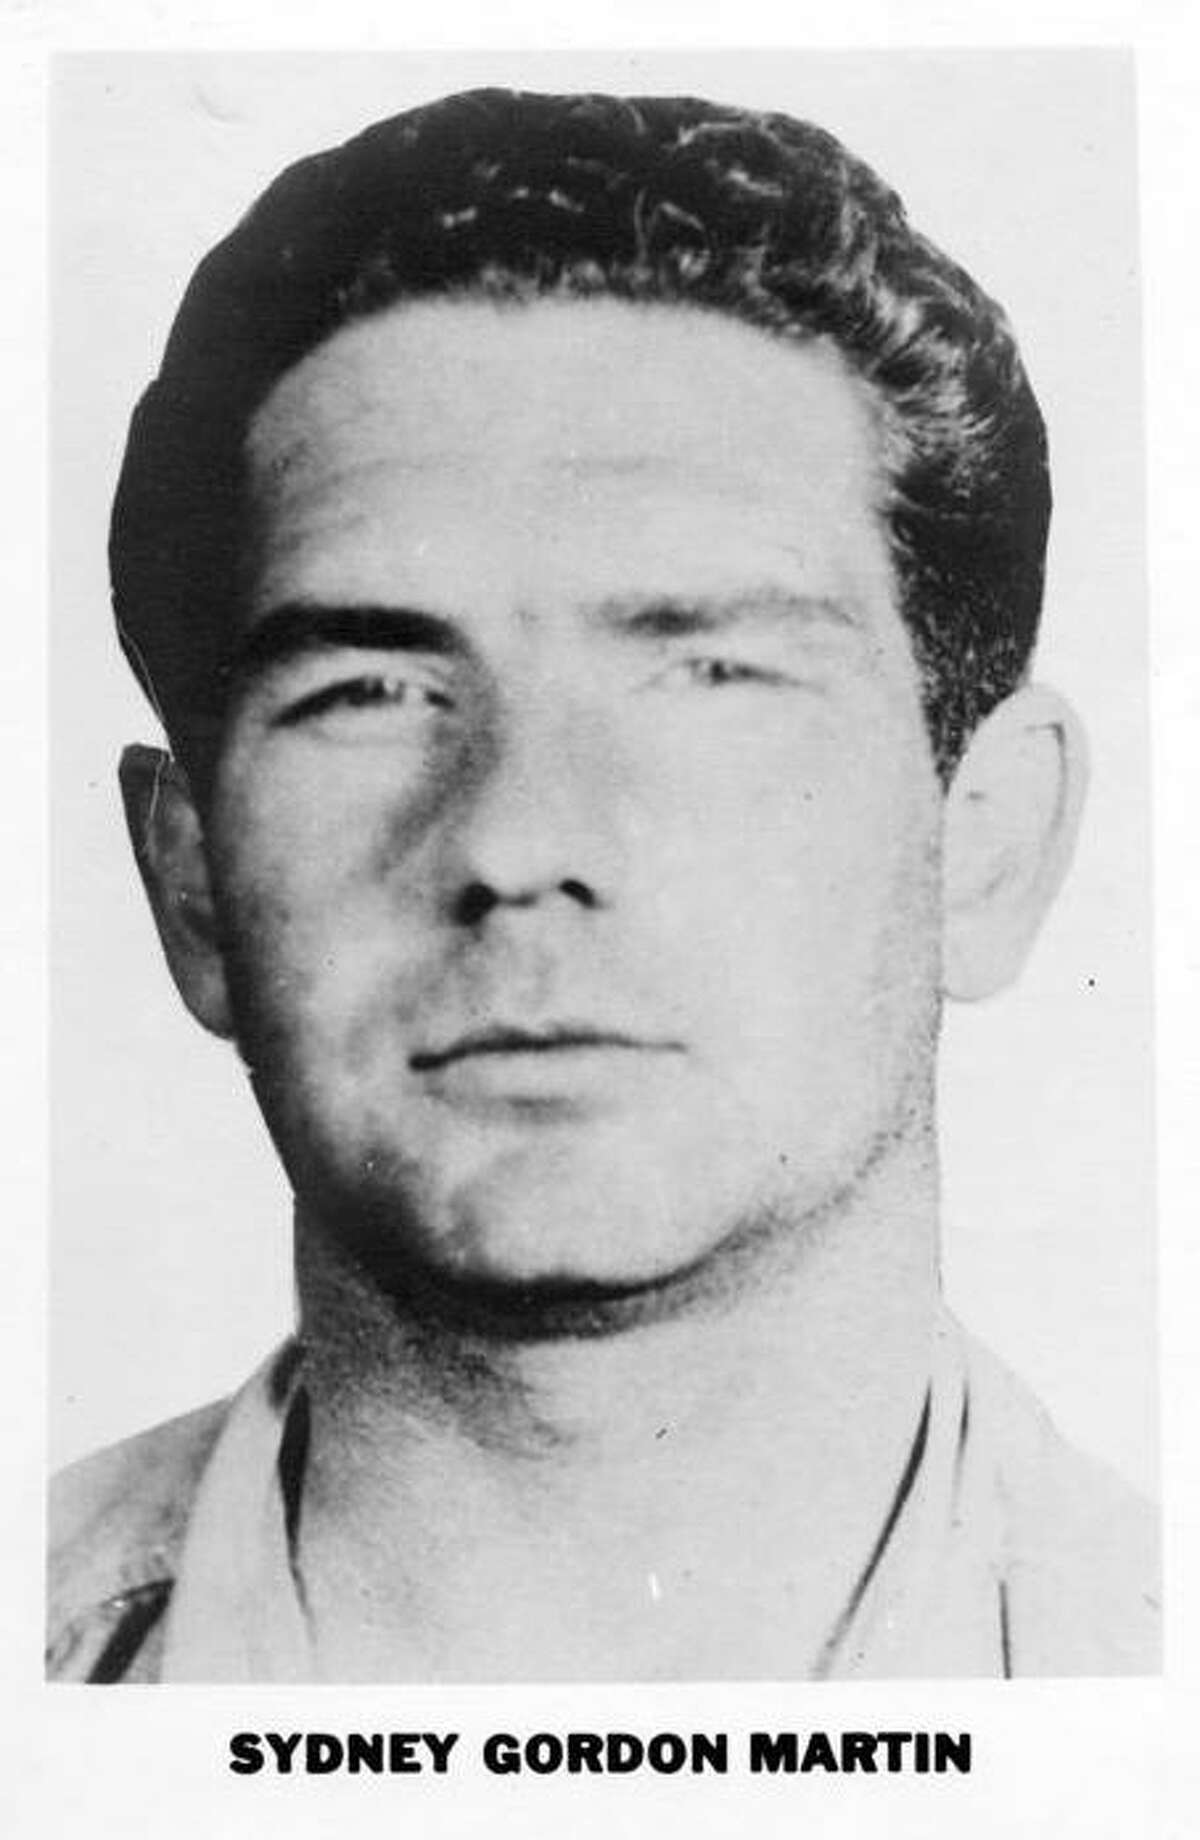 Name:Sydney Gordon Martin Wanted for:Murder and robbery in Massachusetts, he also escaped from jail. The FBI arrested him in Corpus Christi, Texas, after his case was publicized in the Saturday Evening Post. Added to 10 Most Wanted List:Jan. 7, 1952 Status:Captured Nov. 27, 1953